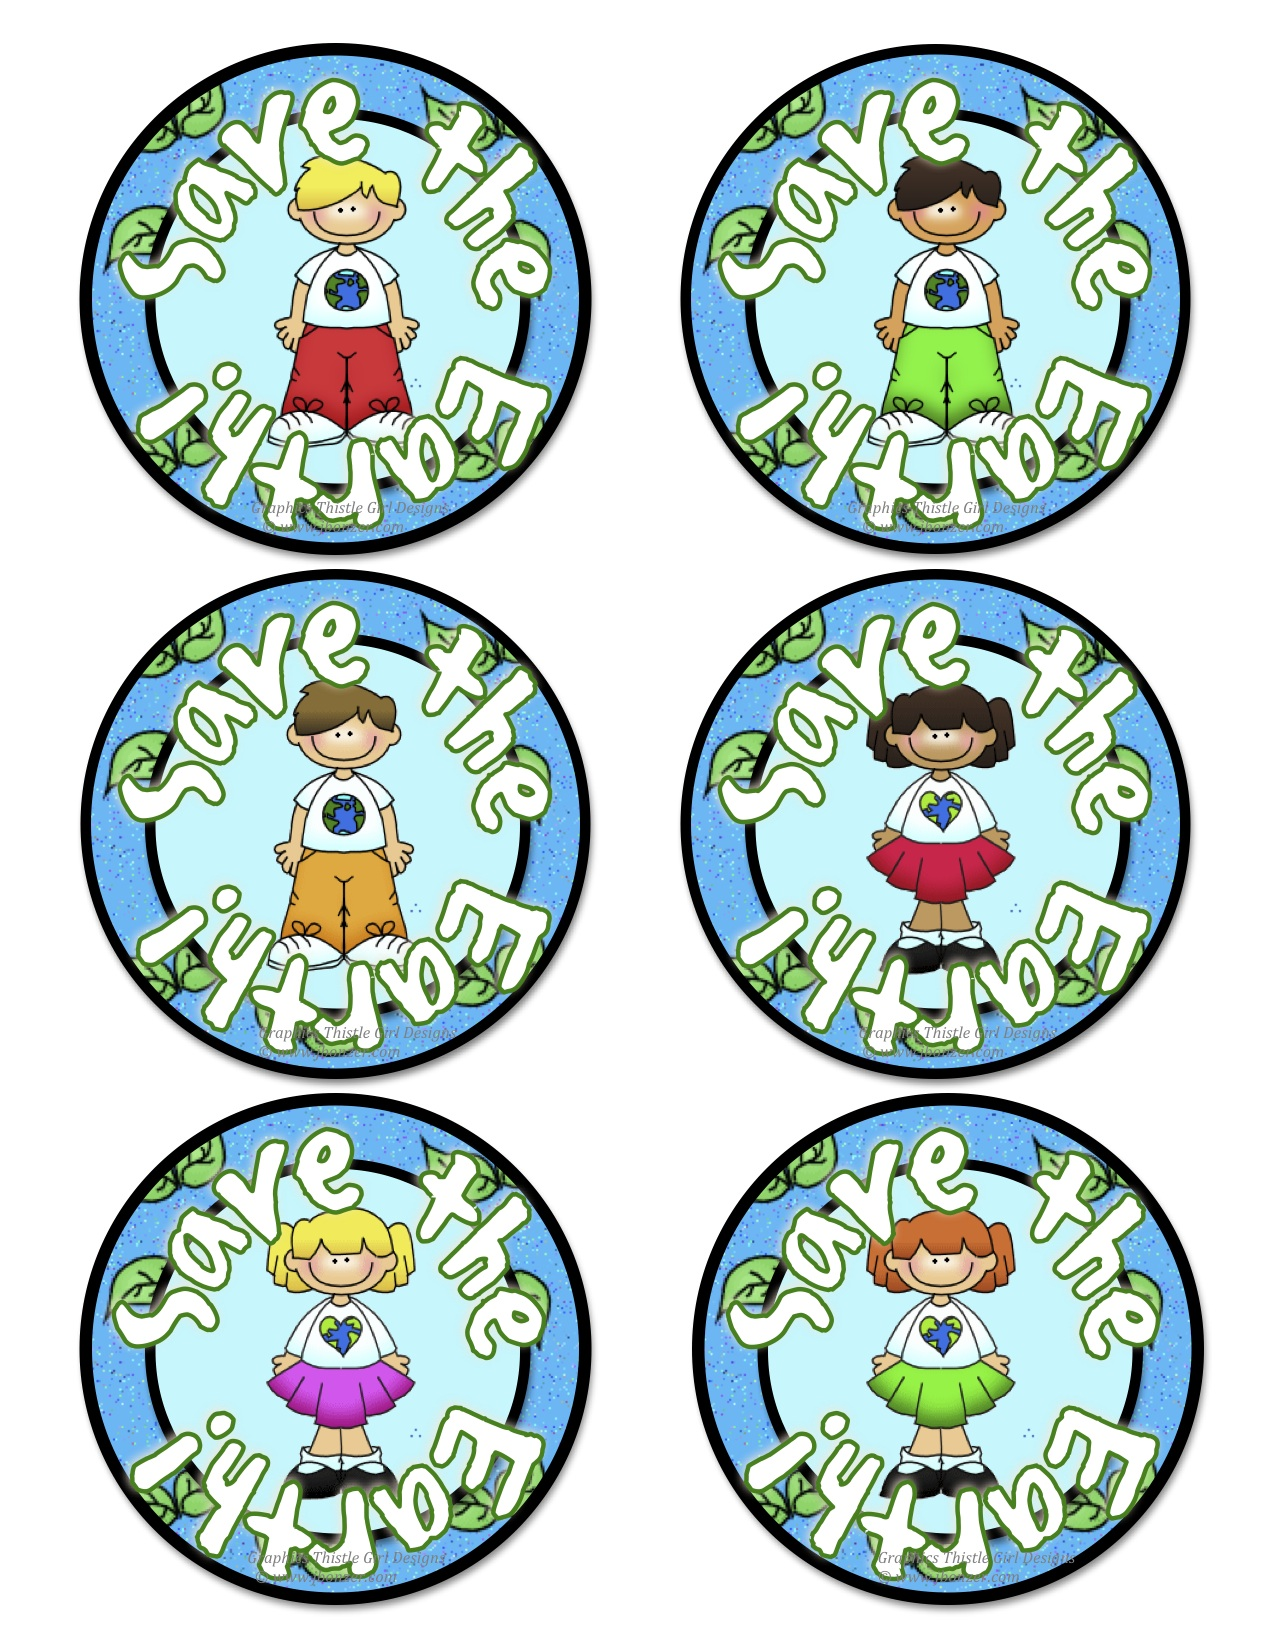 Badges On Earth Day